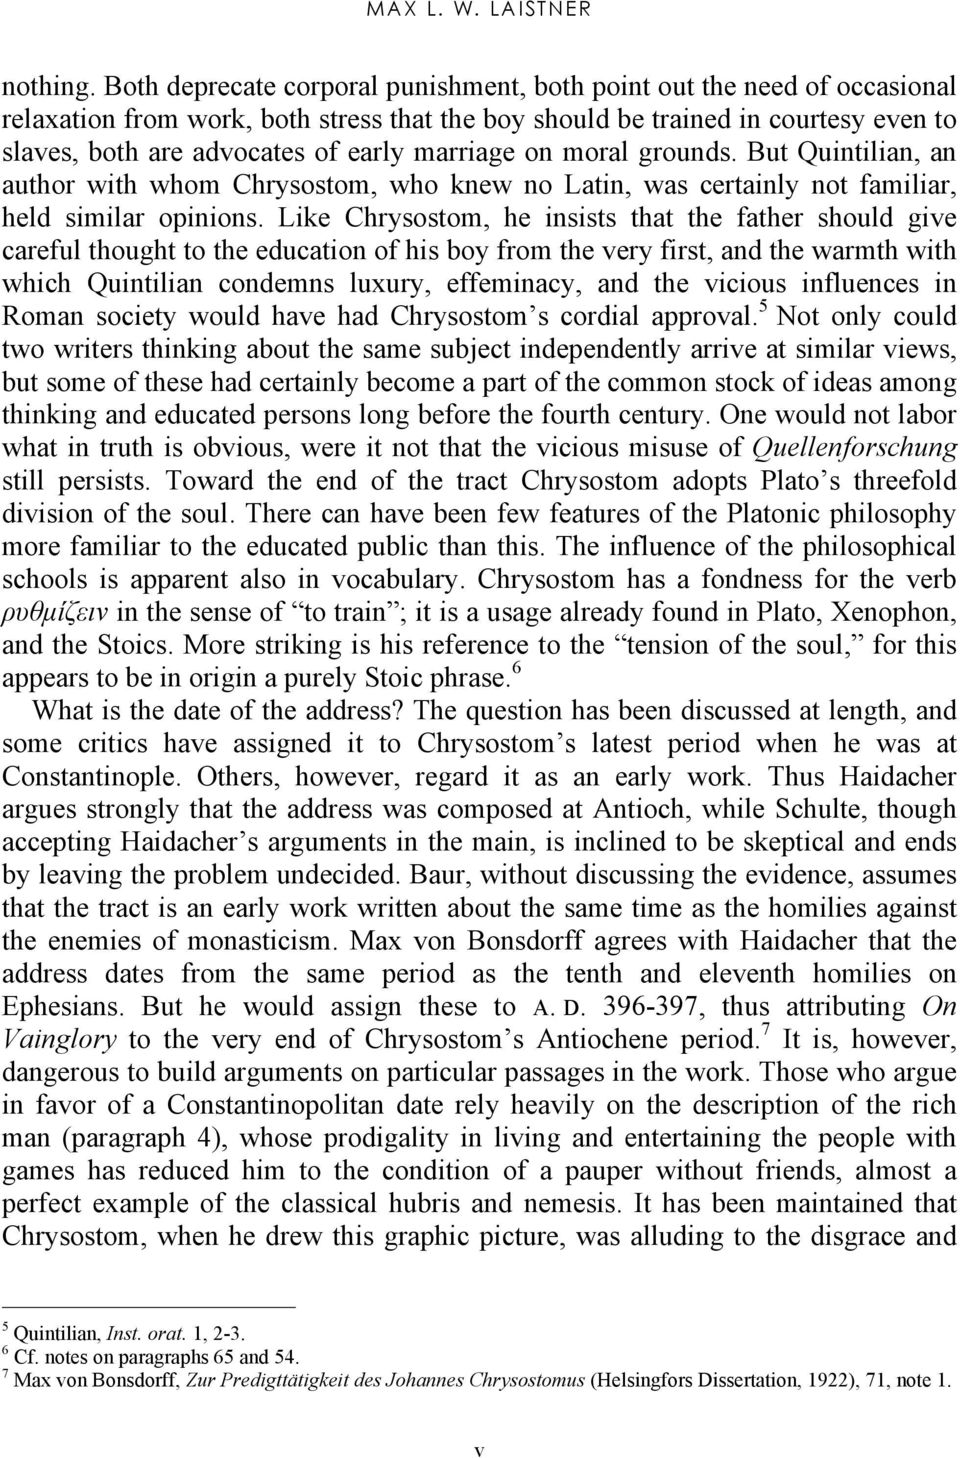 marriage on moral grounds. But Quintilian, an author with whom Chrysostom, who knew no Latin, was certainly not familiar, held similar opinions.